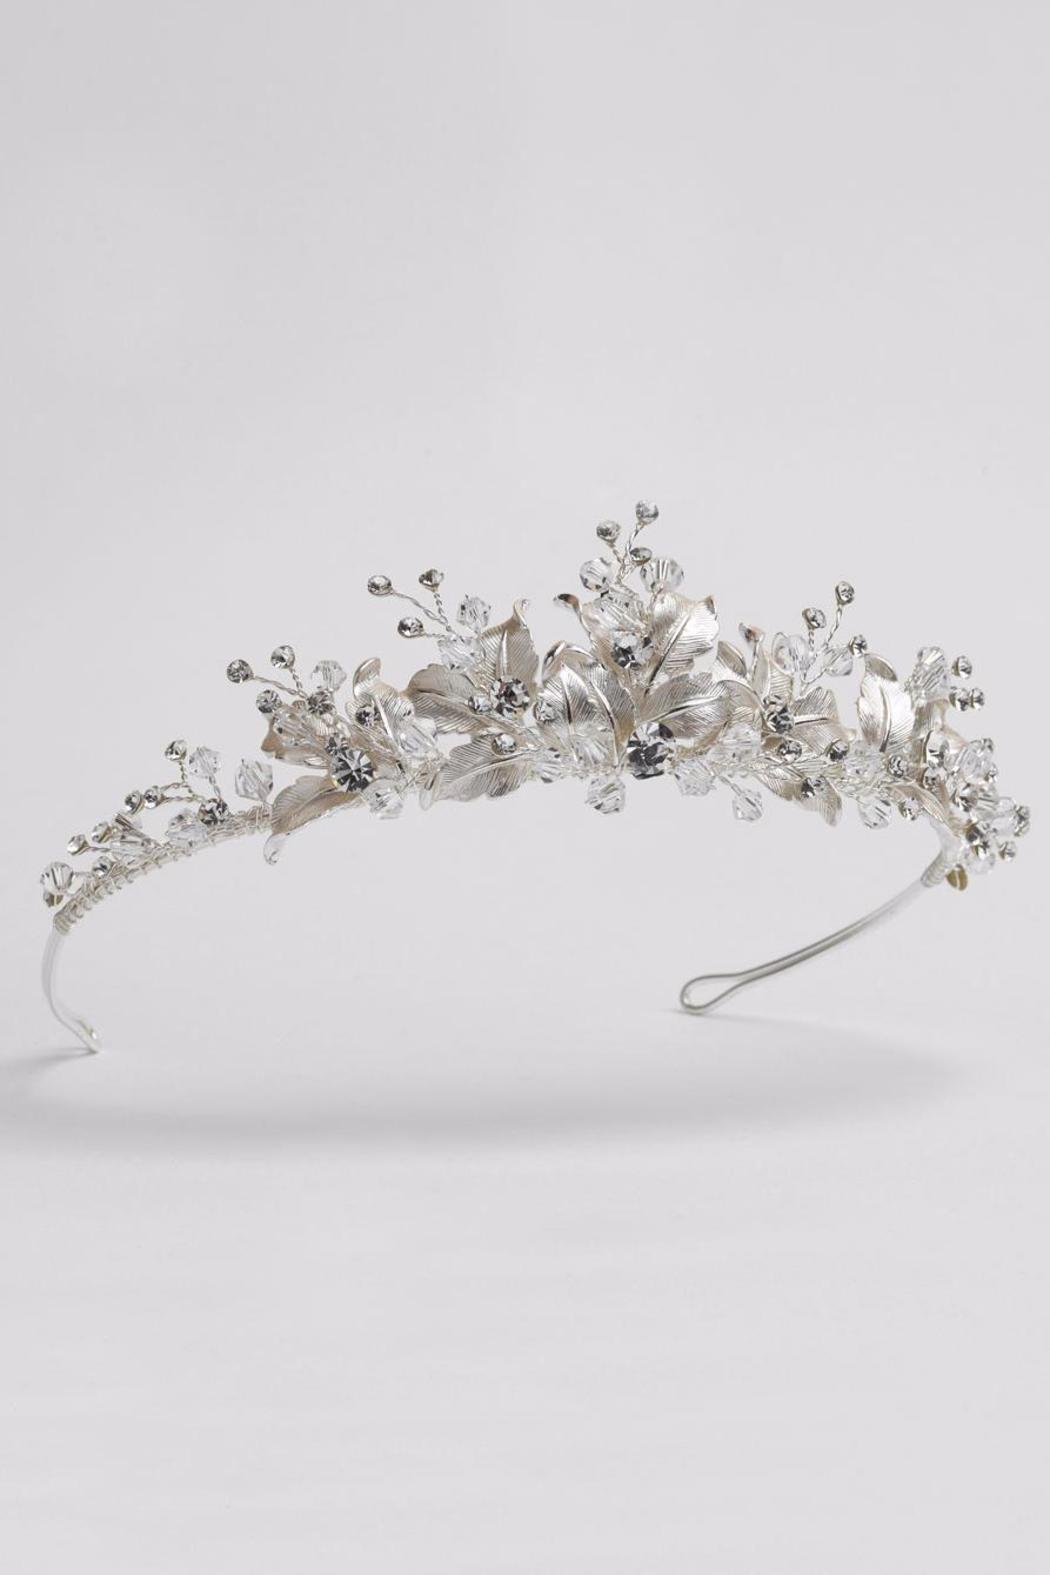 Dareth colburn collection silver flower crown from massachusetts dareth colburn collection silver flower crown side cropped image izmirmasajfo